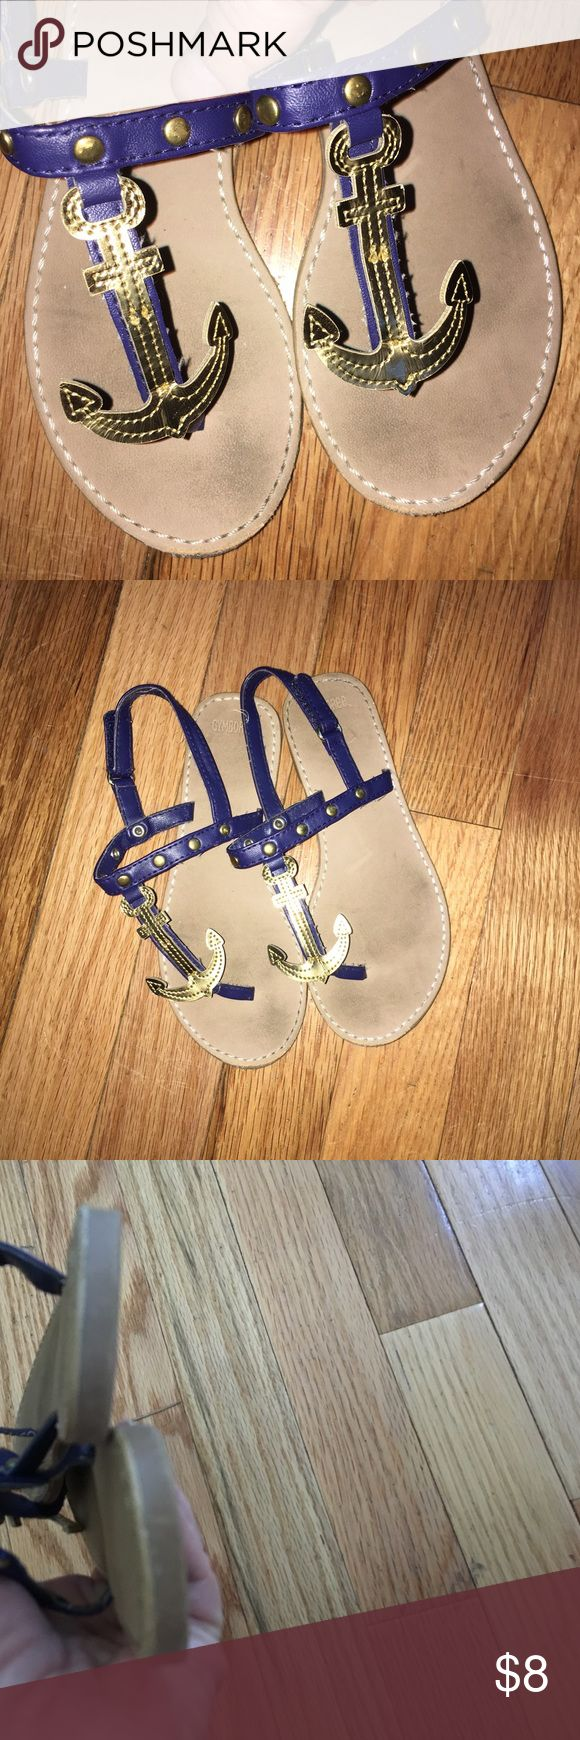 Gymboree Anchor sandals Size 12 well loved anchor sandals by Gymboree still it's if wear left Gymboree Shoes Sandals & Flip Flops